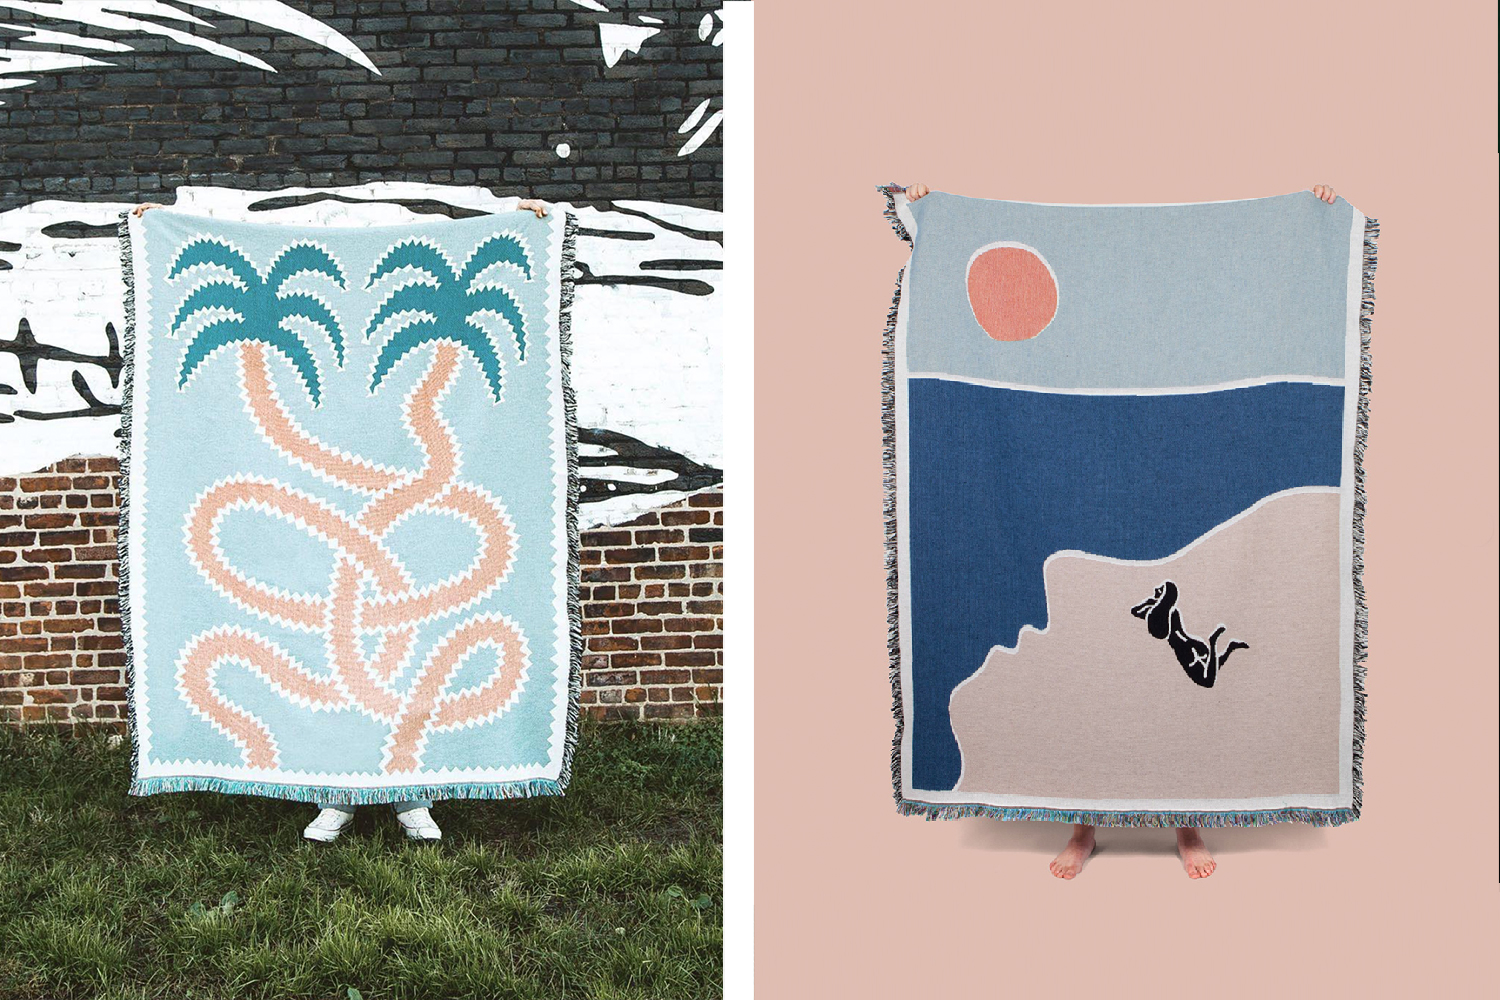 Some artist-designed woven blankets by  Slowdown  .